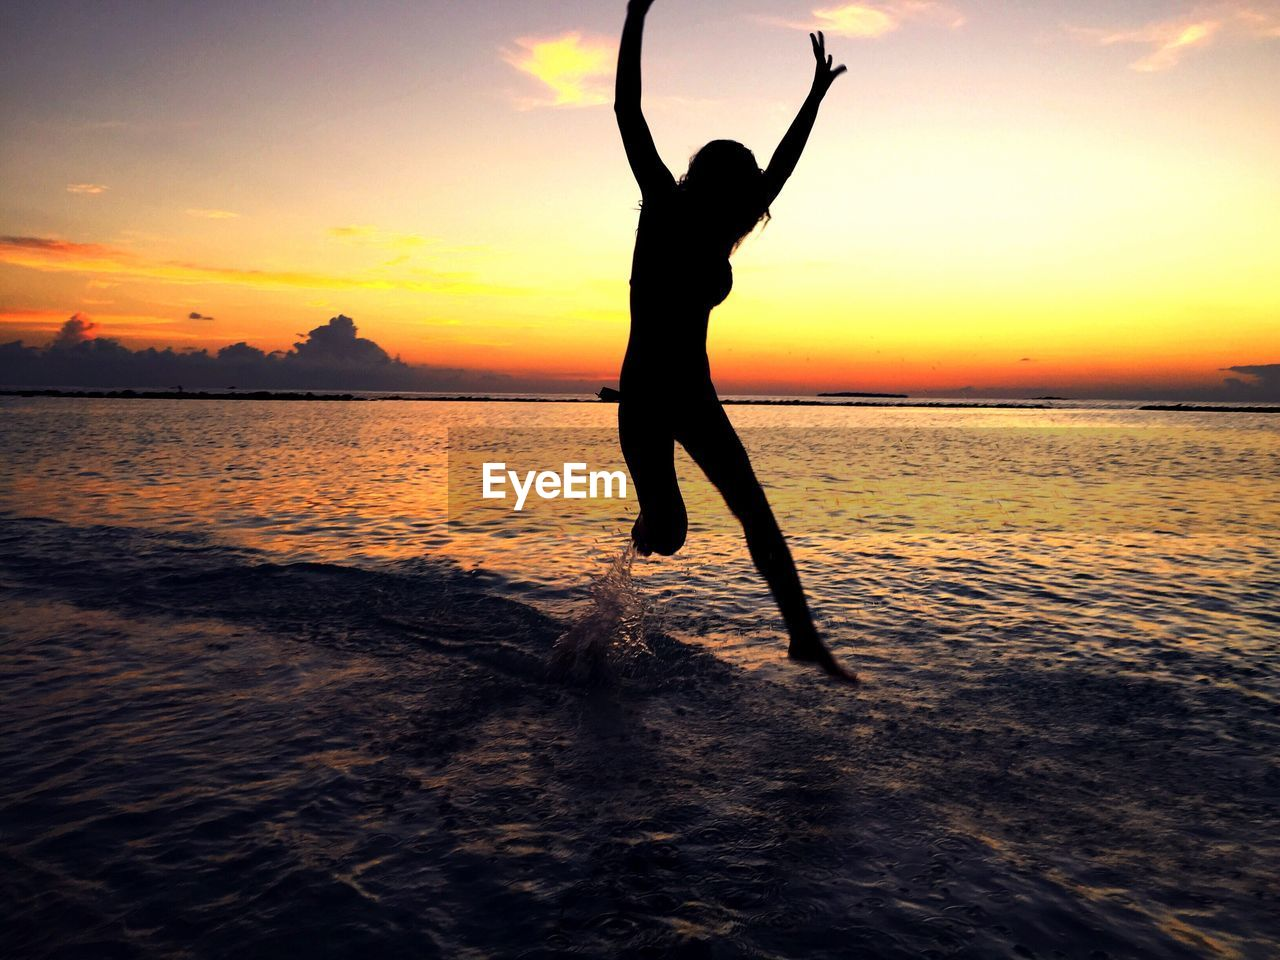 sunset, silhouette, water, sea, real people, nature, beauty in nature, full length, beach, scenics, one person, sky, leisure activity, fun, balance, horizon over water, outdoors, lifestyles, jumping, skill, motion, handstand, flexibility, people